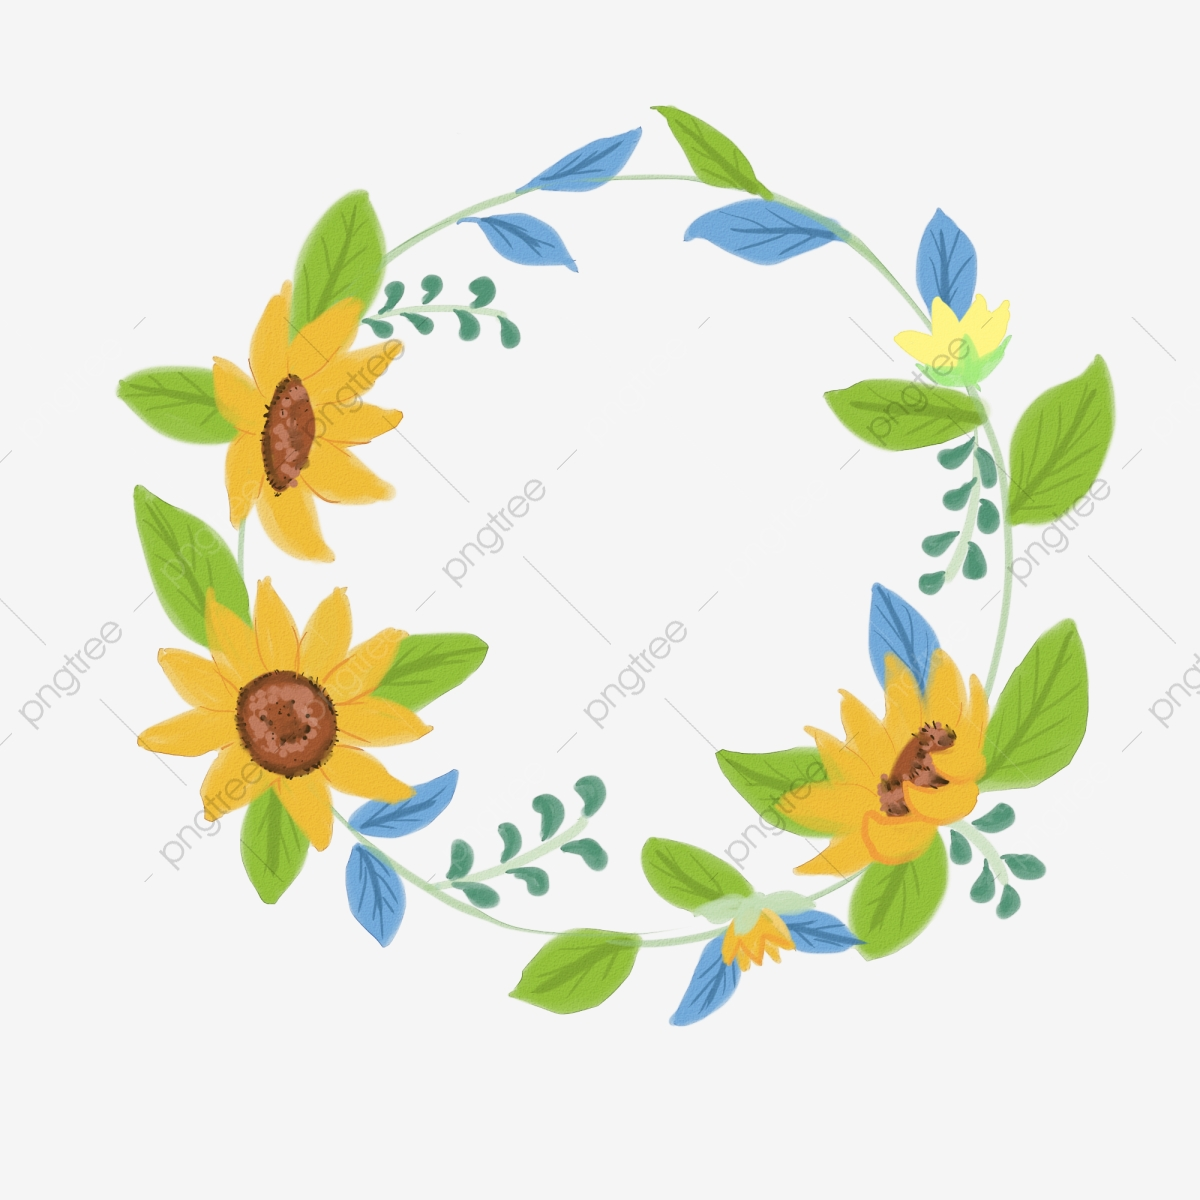 Hand Drawn Sunflower Wreath Illustration Element Hand Painted Sunflower Wreath Png Transparent Clipart Image And Psd File For Free Download